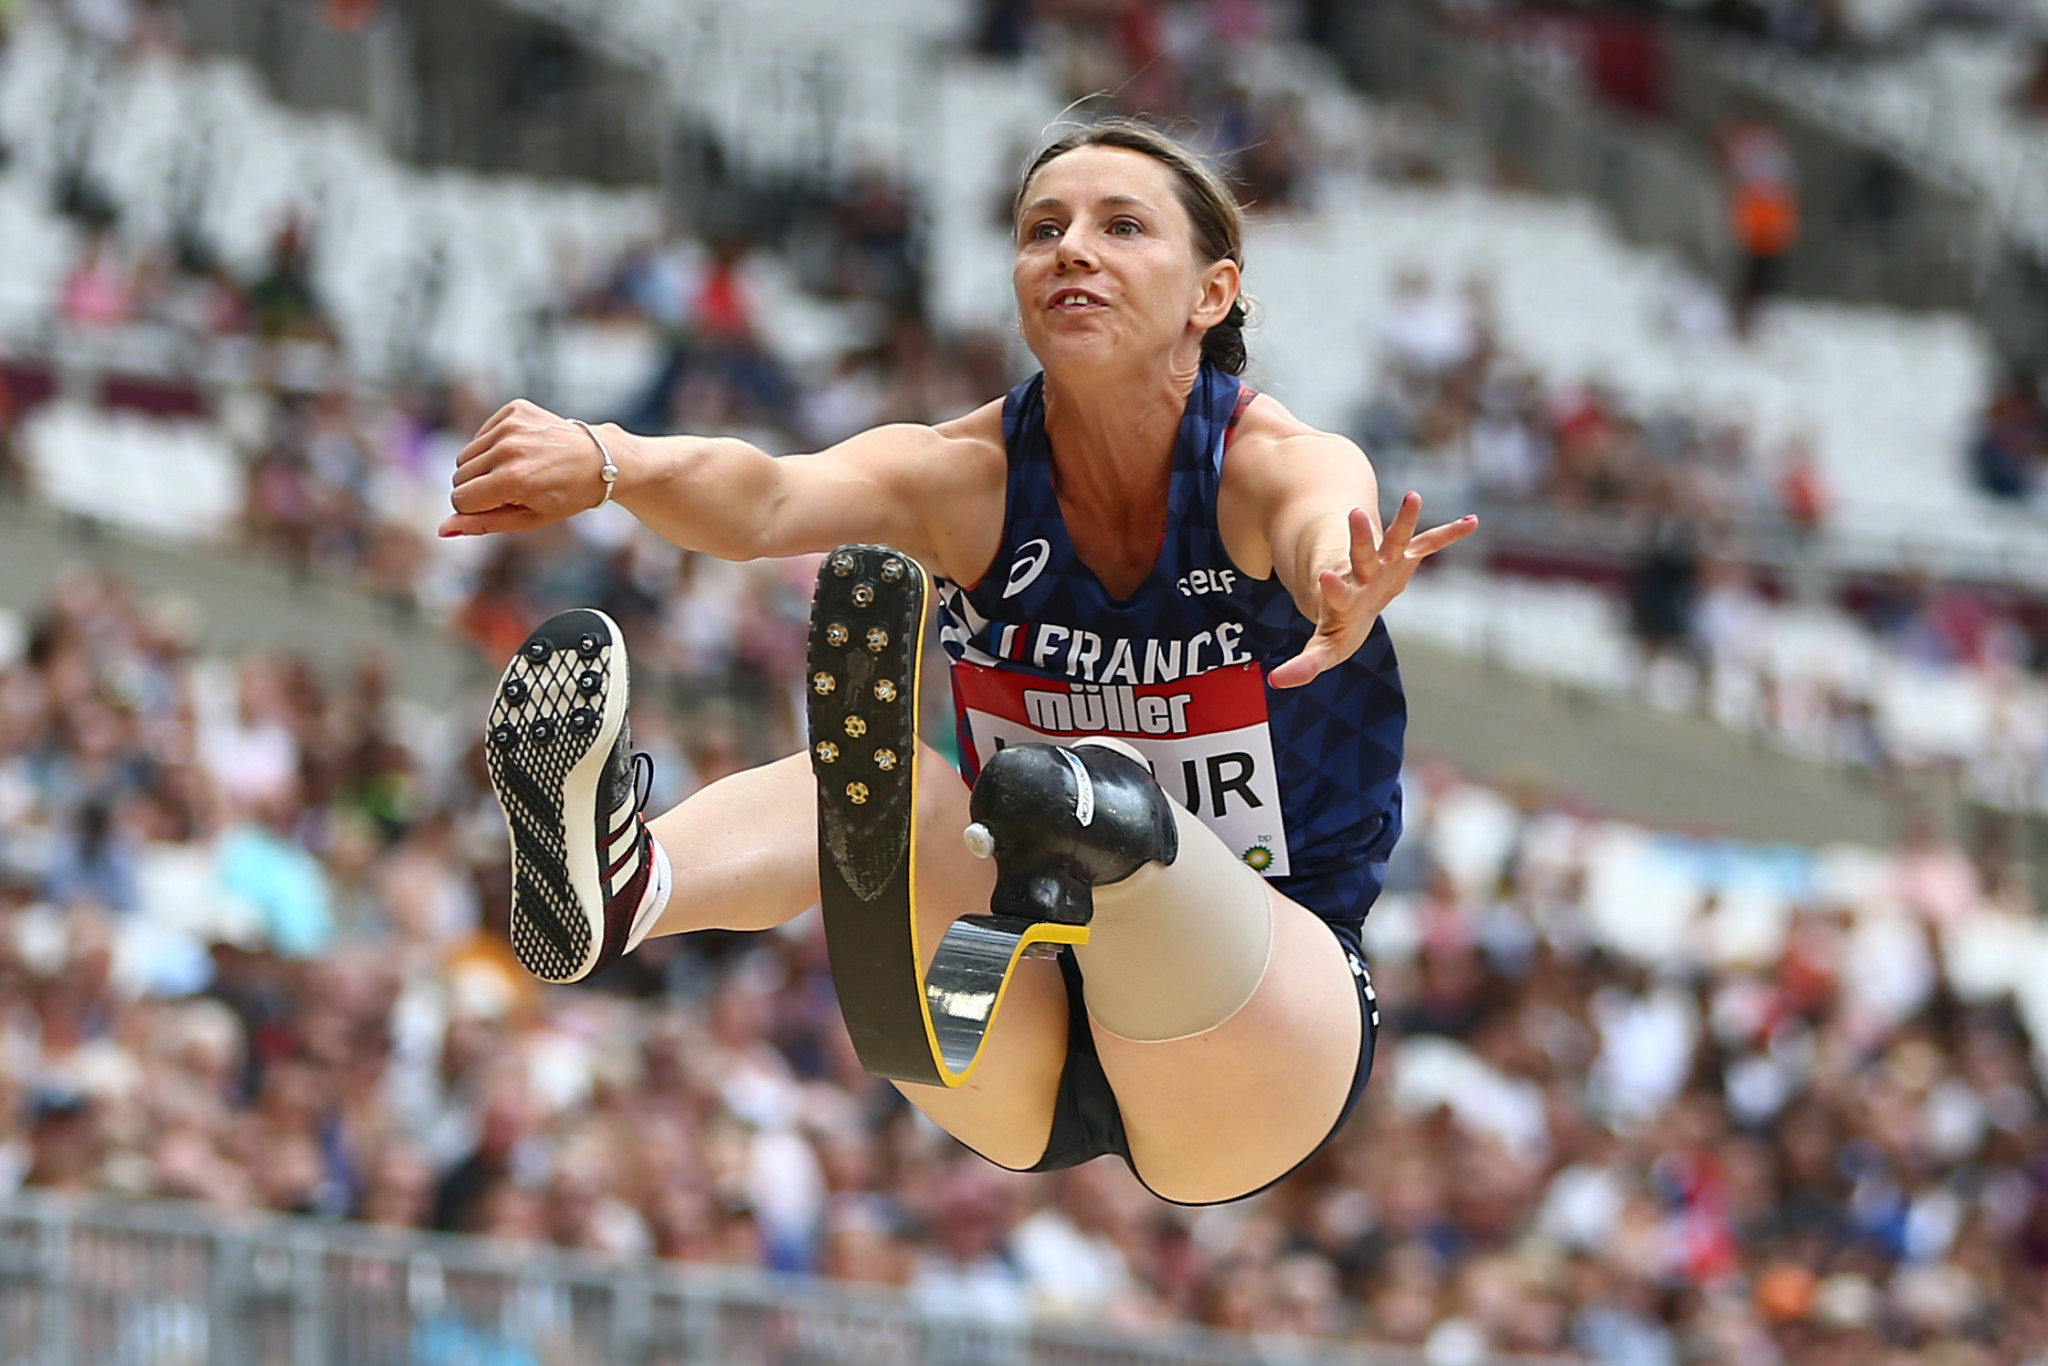 Three-time Paralympic champion Le Fur joins French Economic, Social and Environmental Council